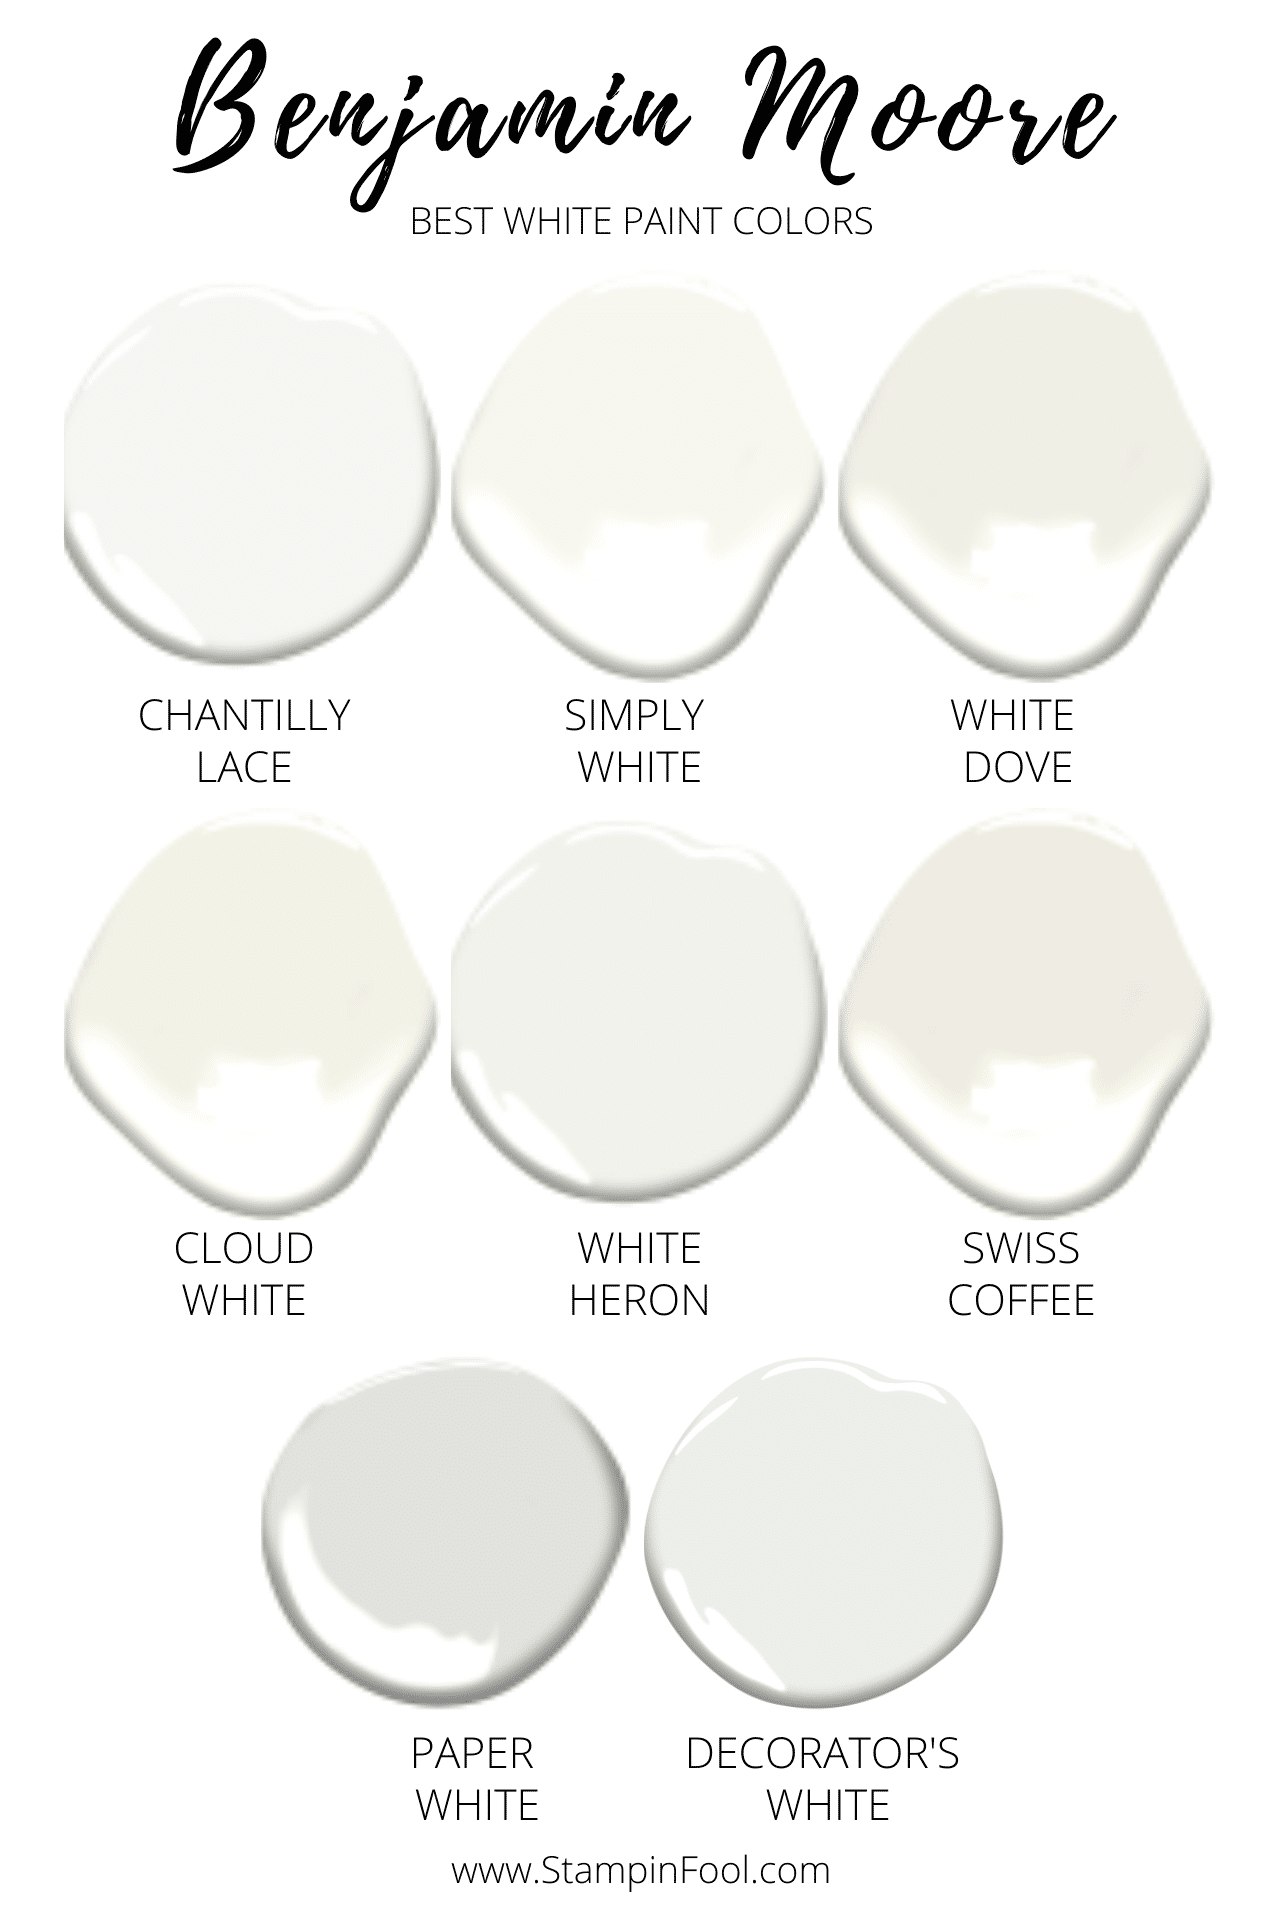 The Best 8 Benjamin Moore White Paint Colors In 2020